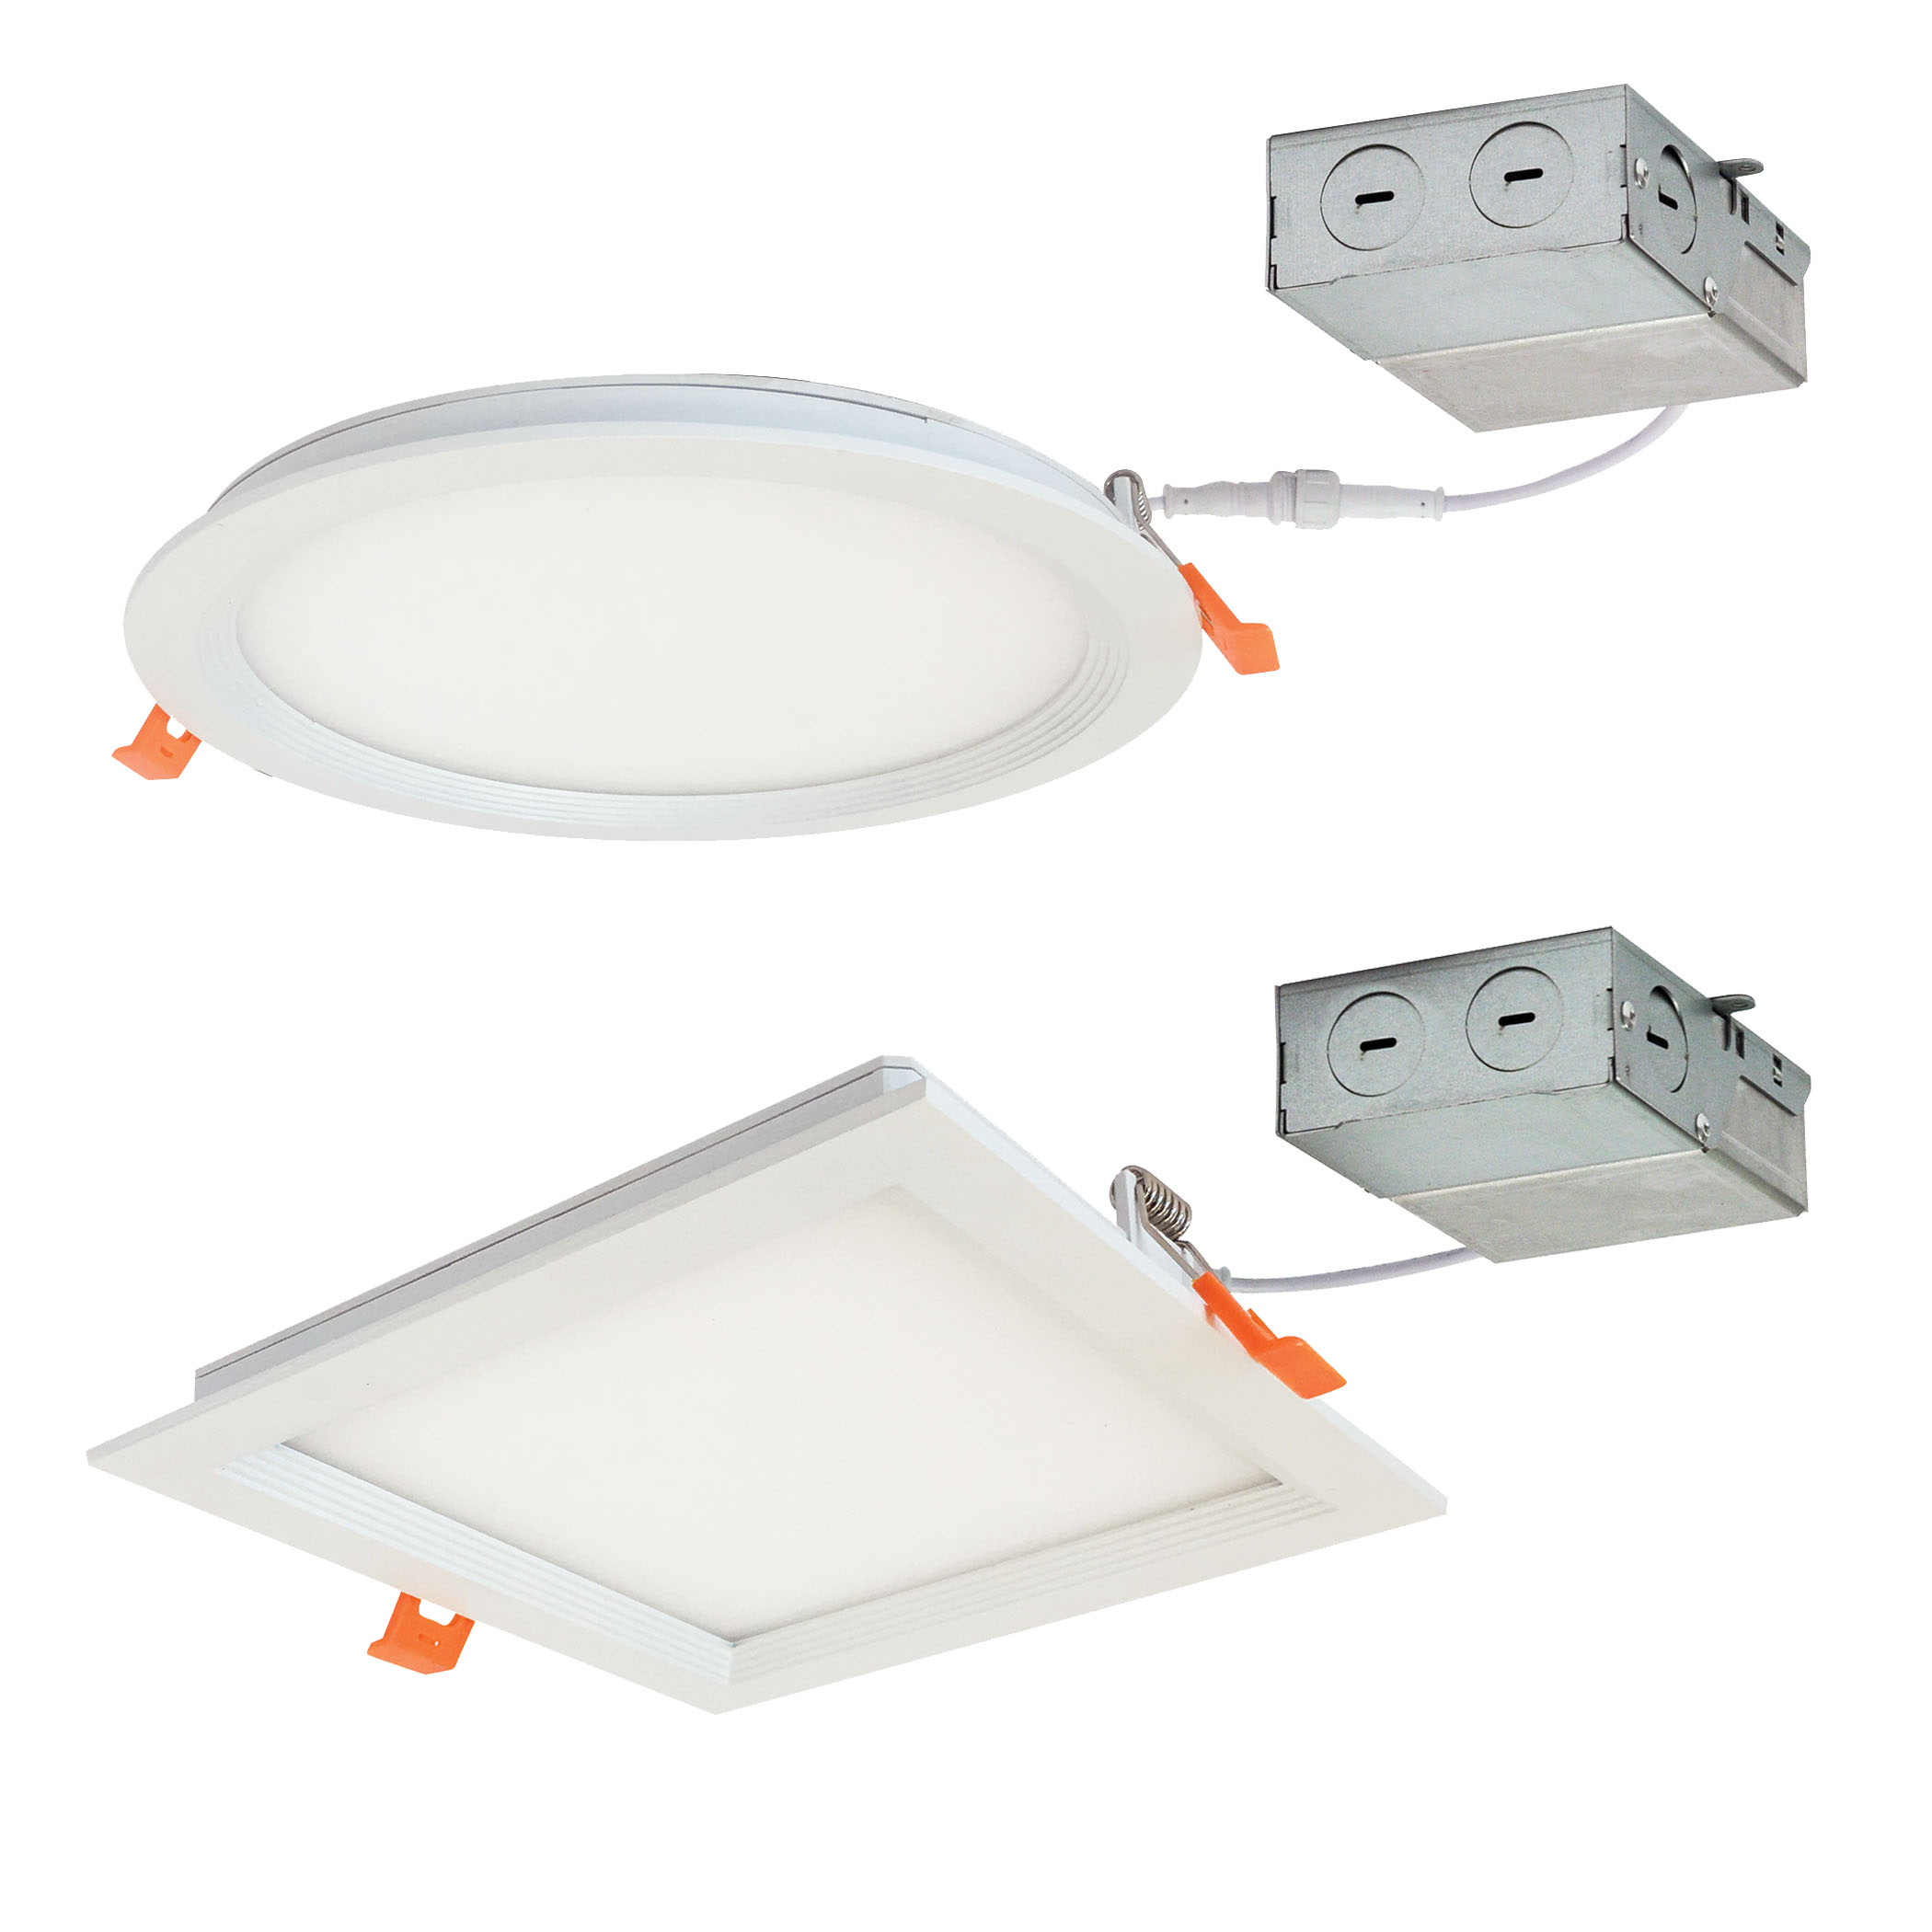 nora lighting introduces thin recessed